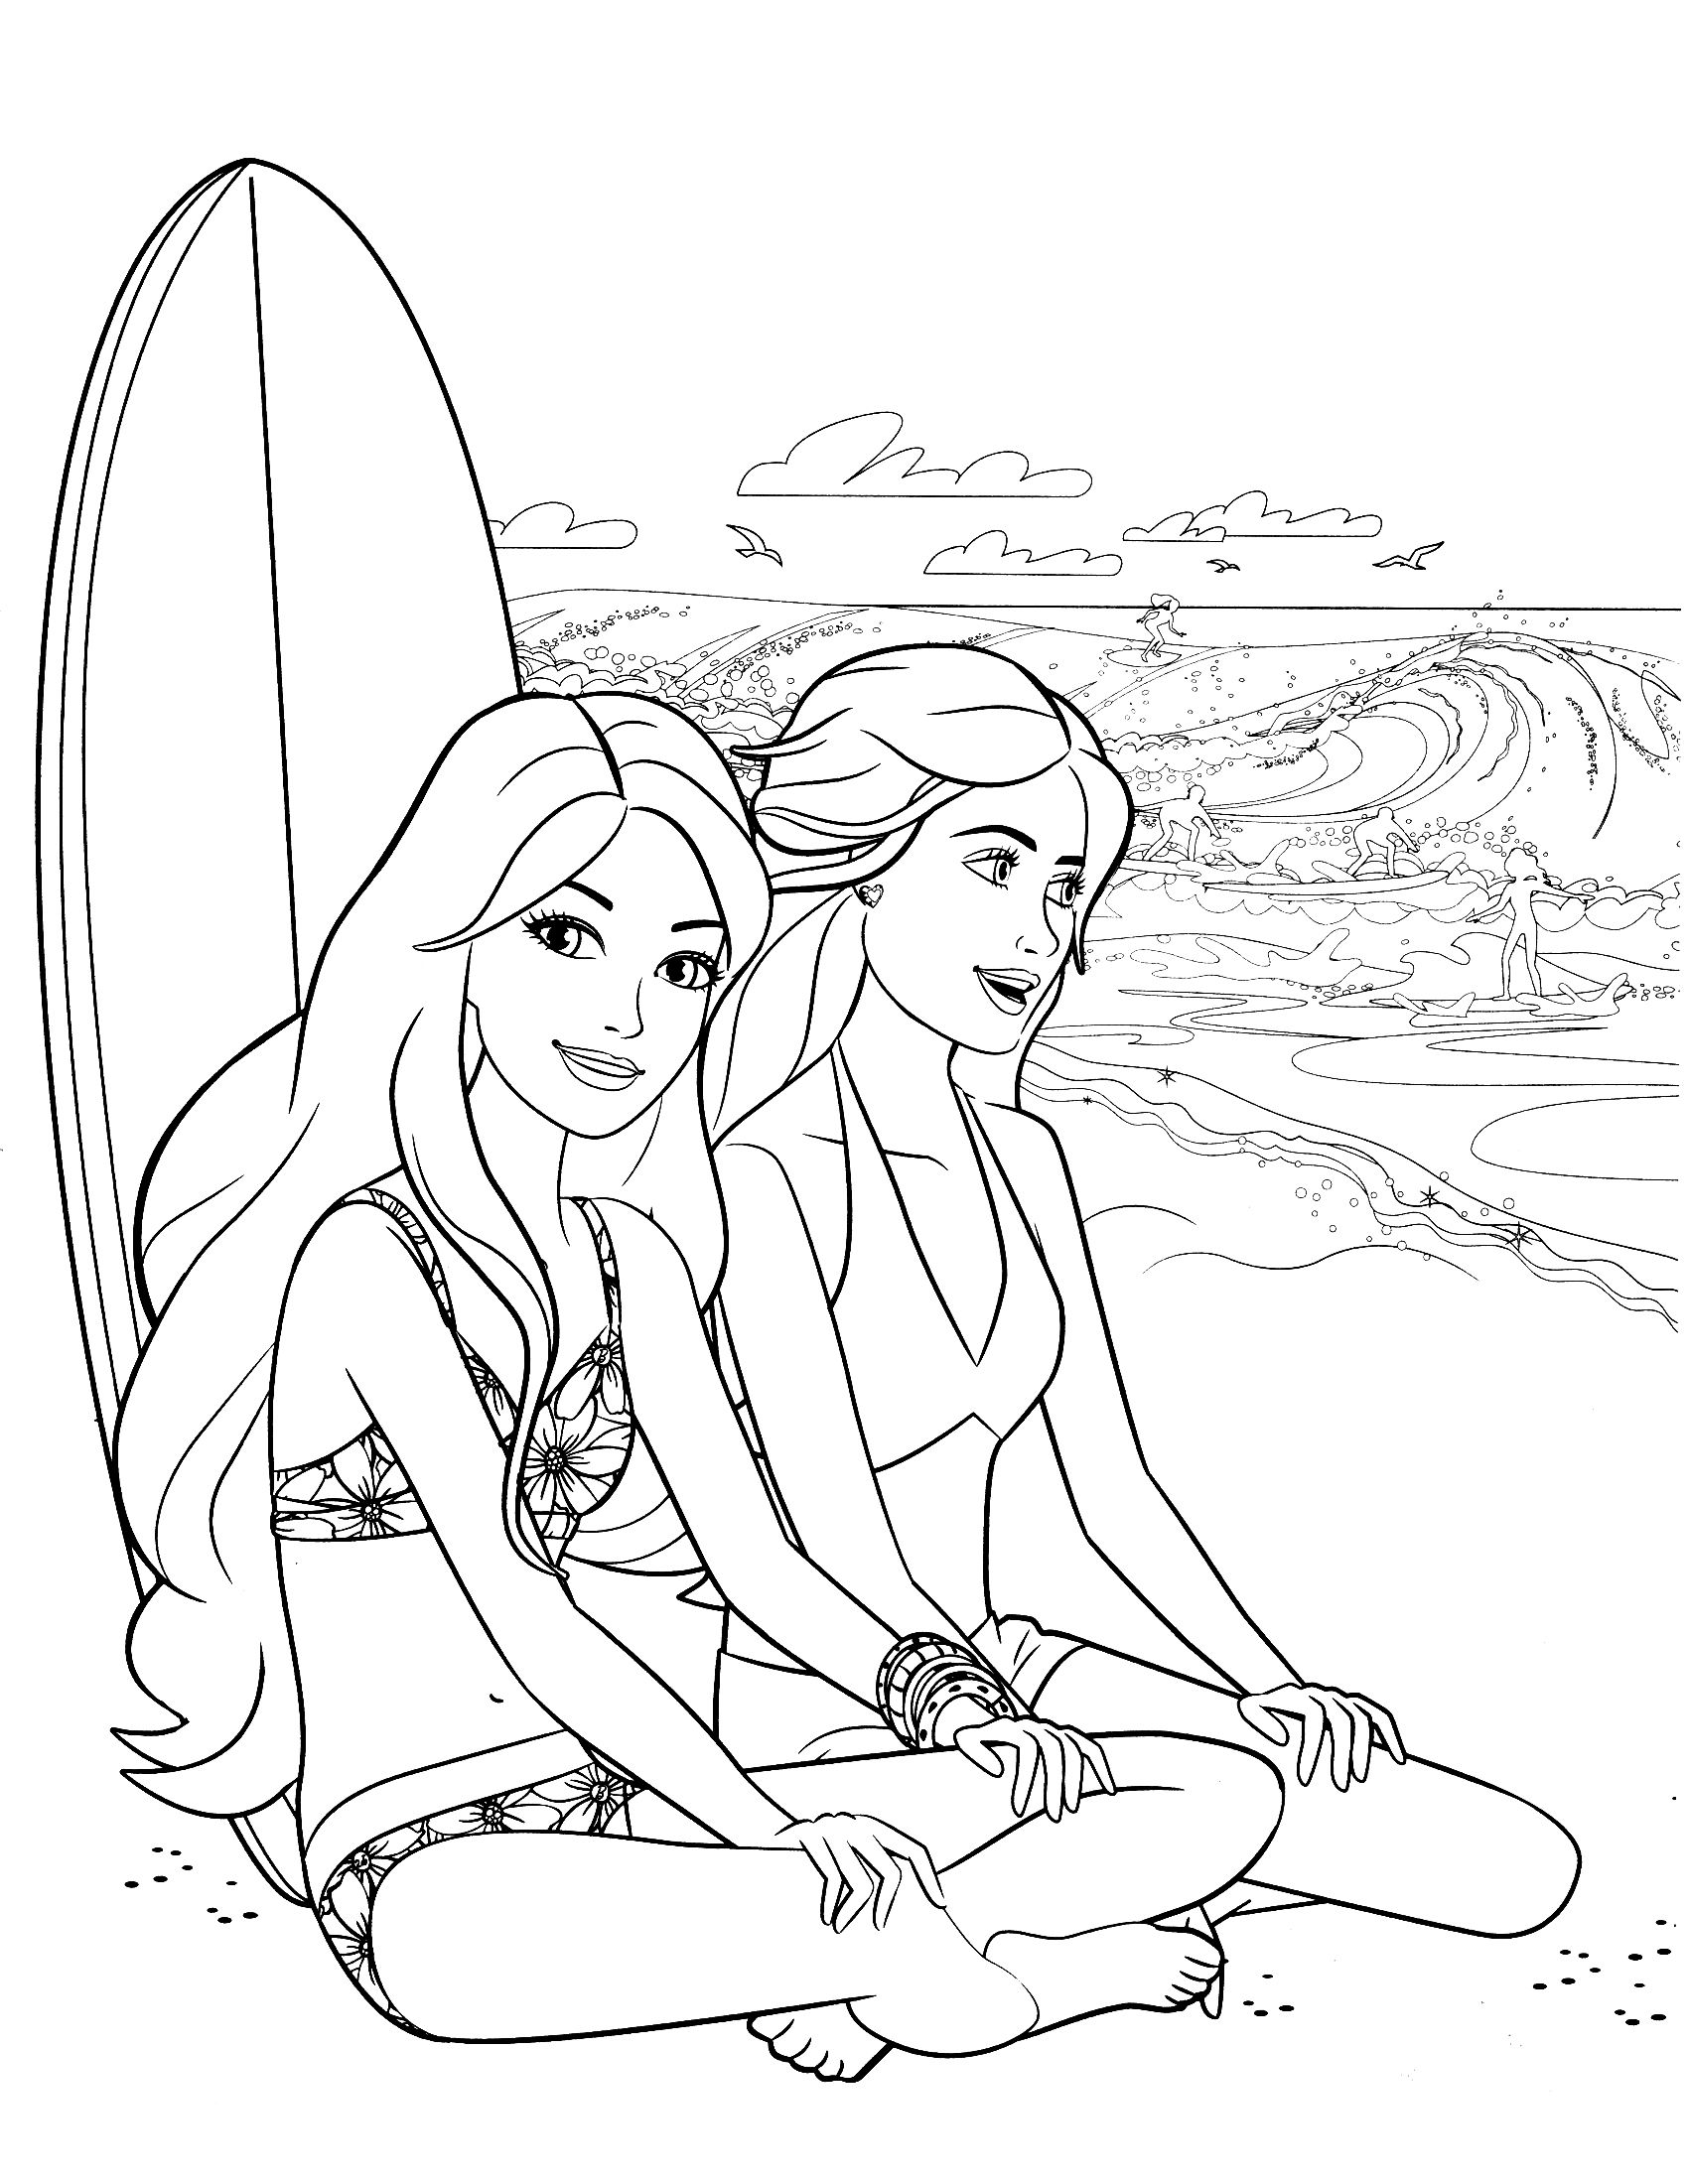 Http Coloringcolor Com Wp Content Themes Coloring Pages Barbie